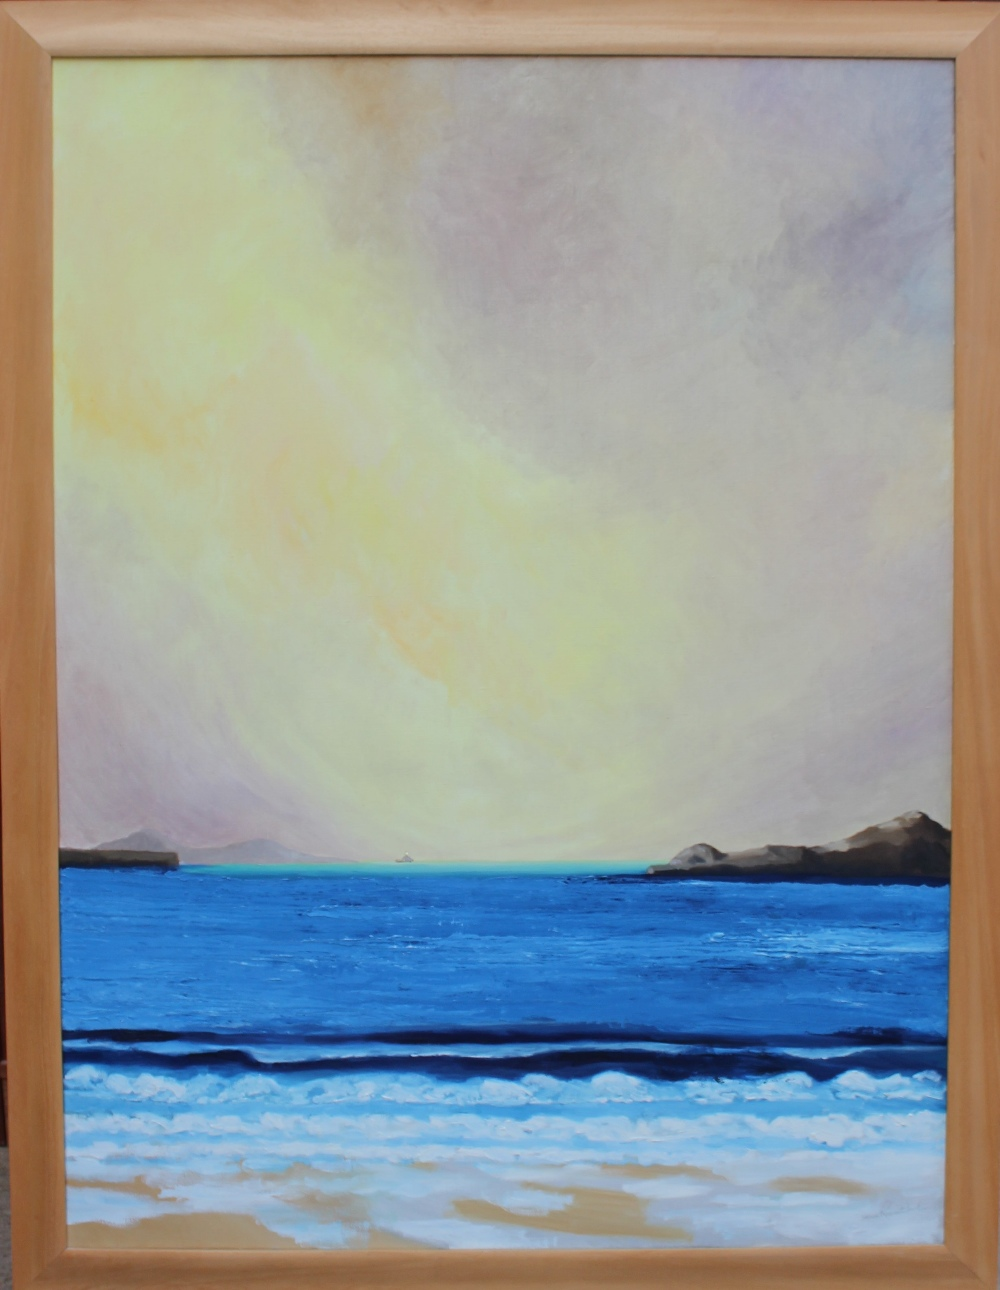 Stan Rosenthal Whitsands Beach Oil on canvas Signed and label verso 121 x 90cm - Image 2 of 4